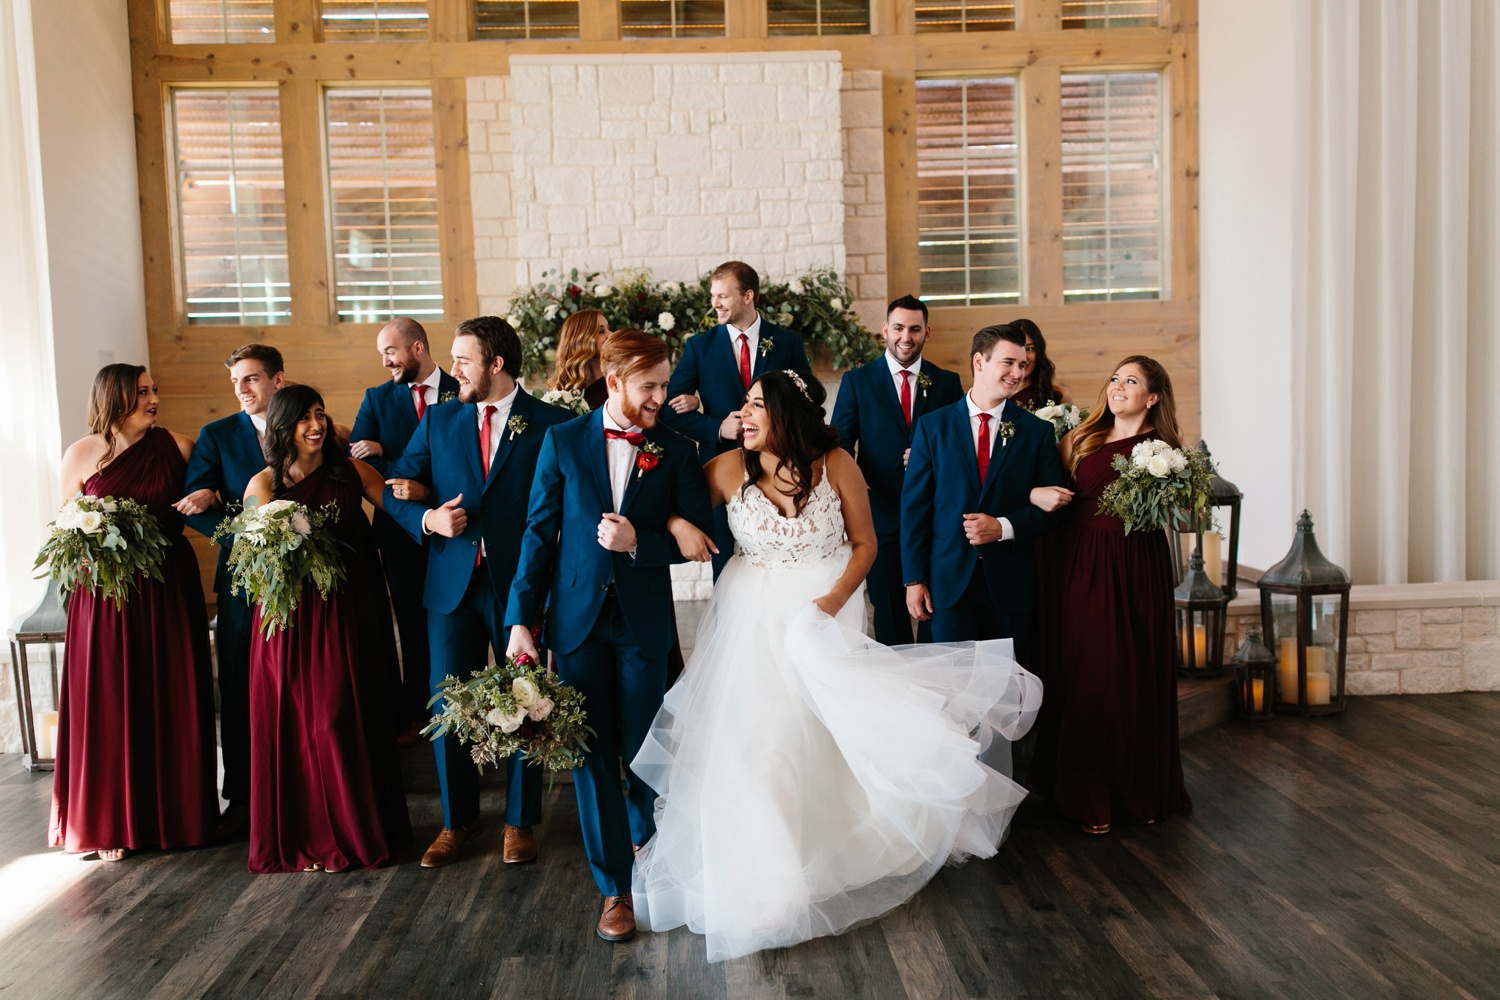 Grant + Lysette | a vibrant, deep burgundy and navy, and mixed metals wedding at Hidden Pines Chapel by North Texas Wedding Photographer Rachel Meagan Photography 123